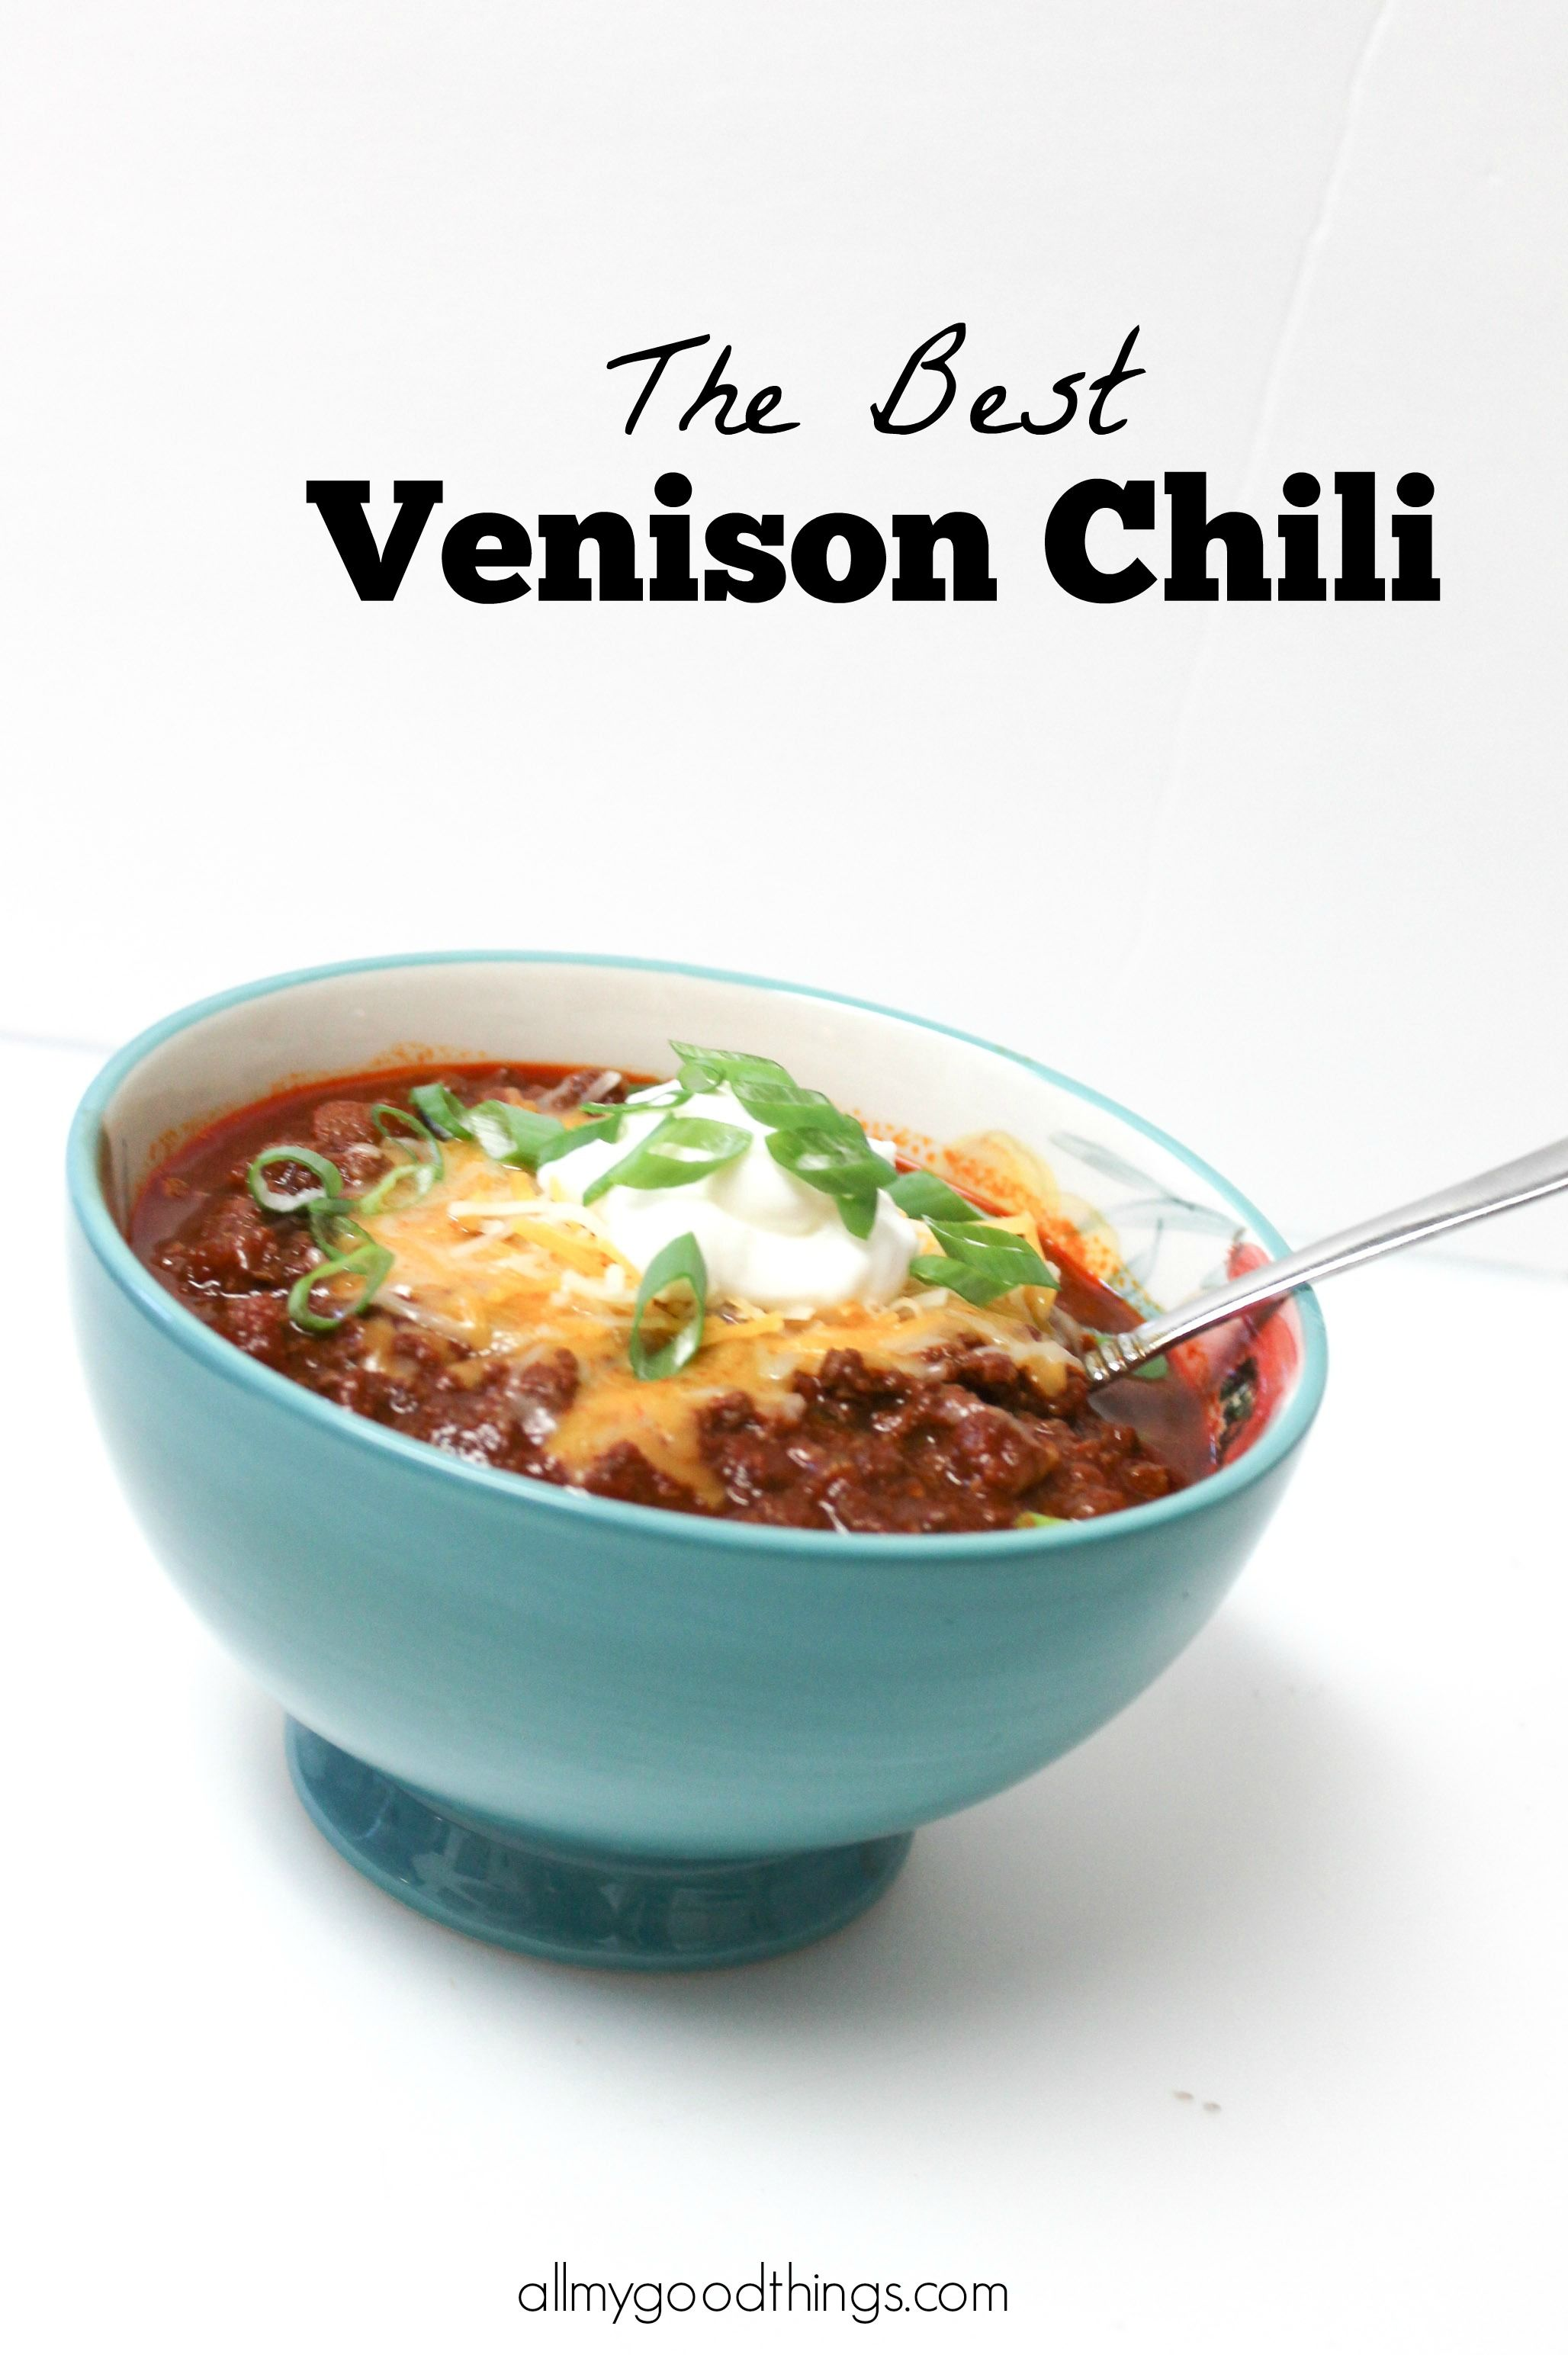 The Best Venison Chili All My Good Things In 2020 Venison Recipes Deer Meat Recipes Venison Chili